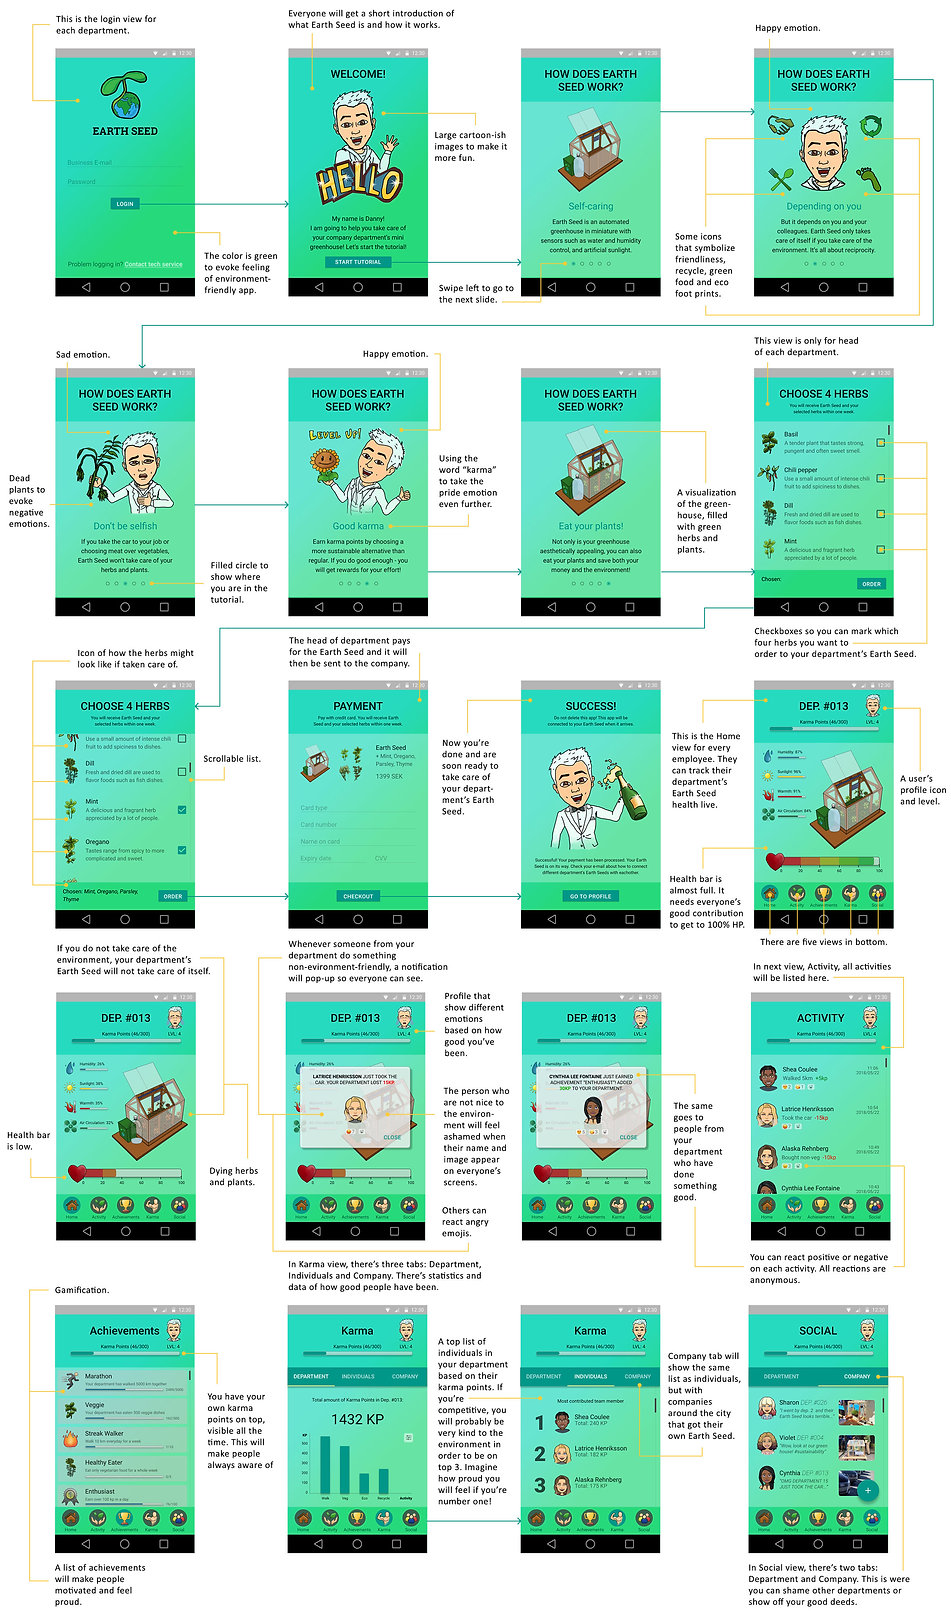 Earth Seed flow.jpg